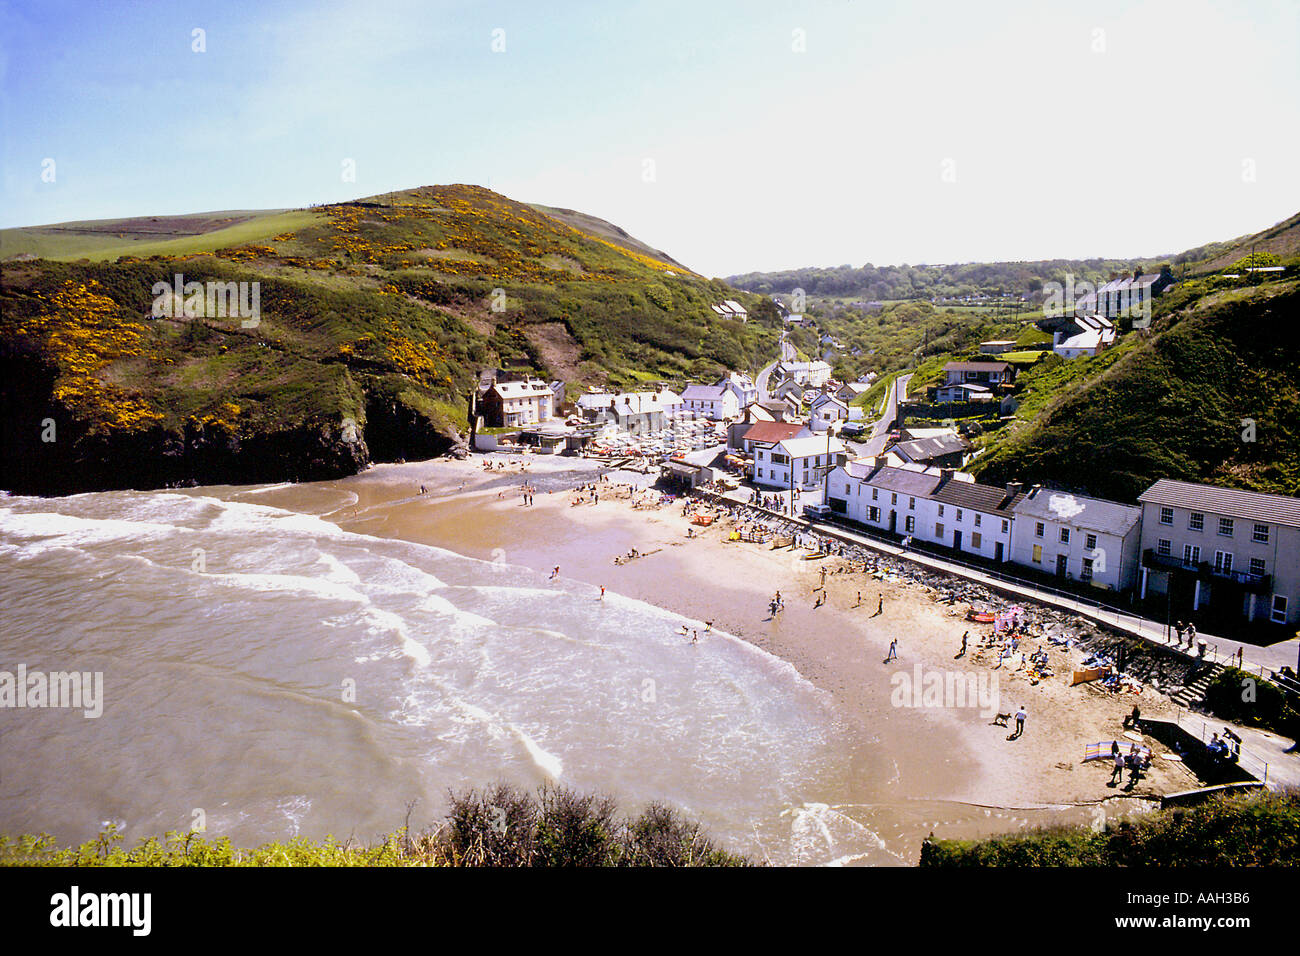 View of the beach at Llangrannog Cardiganshire Mid Wales - Stock Image